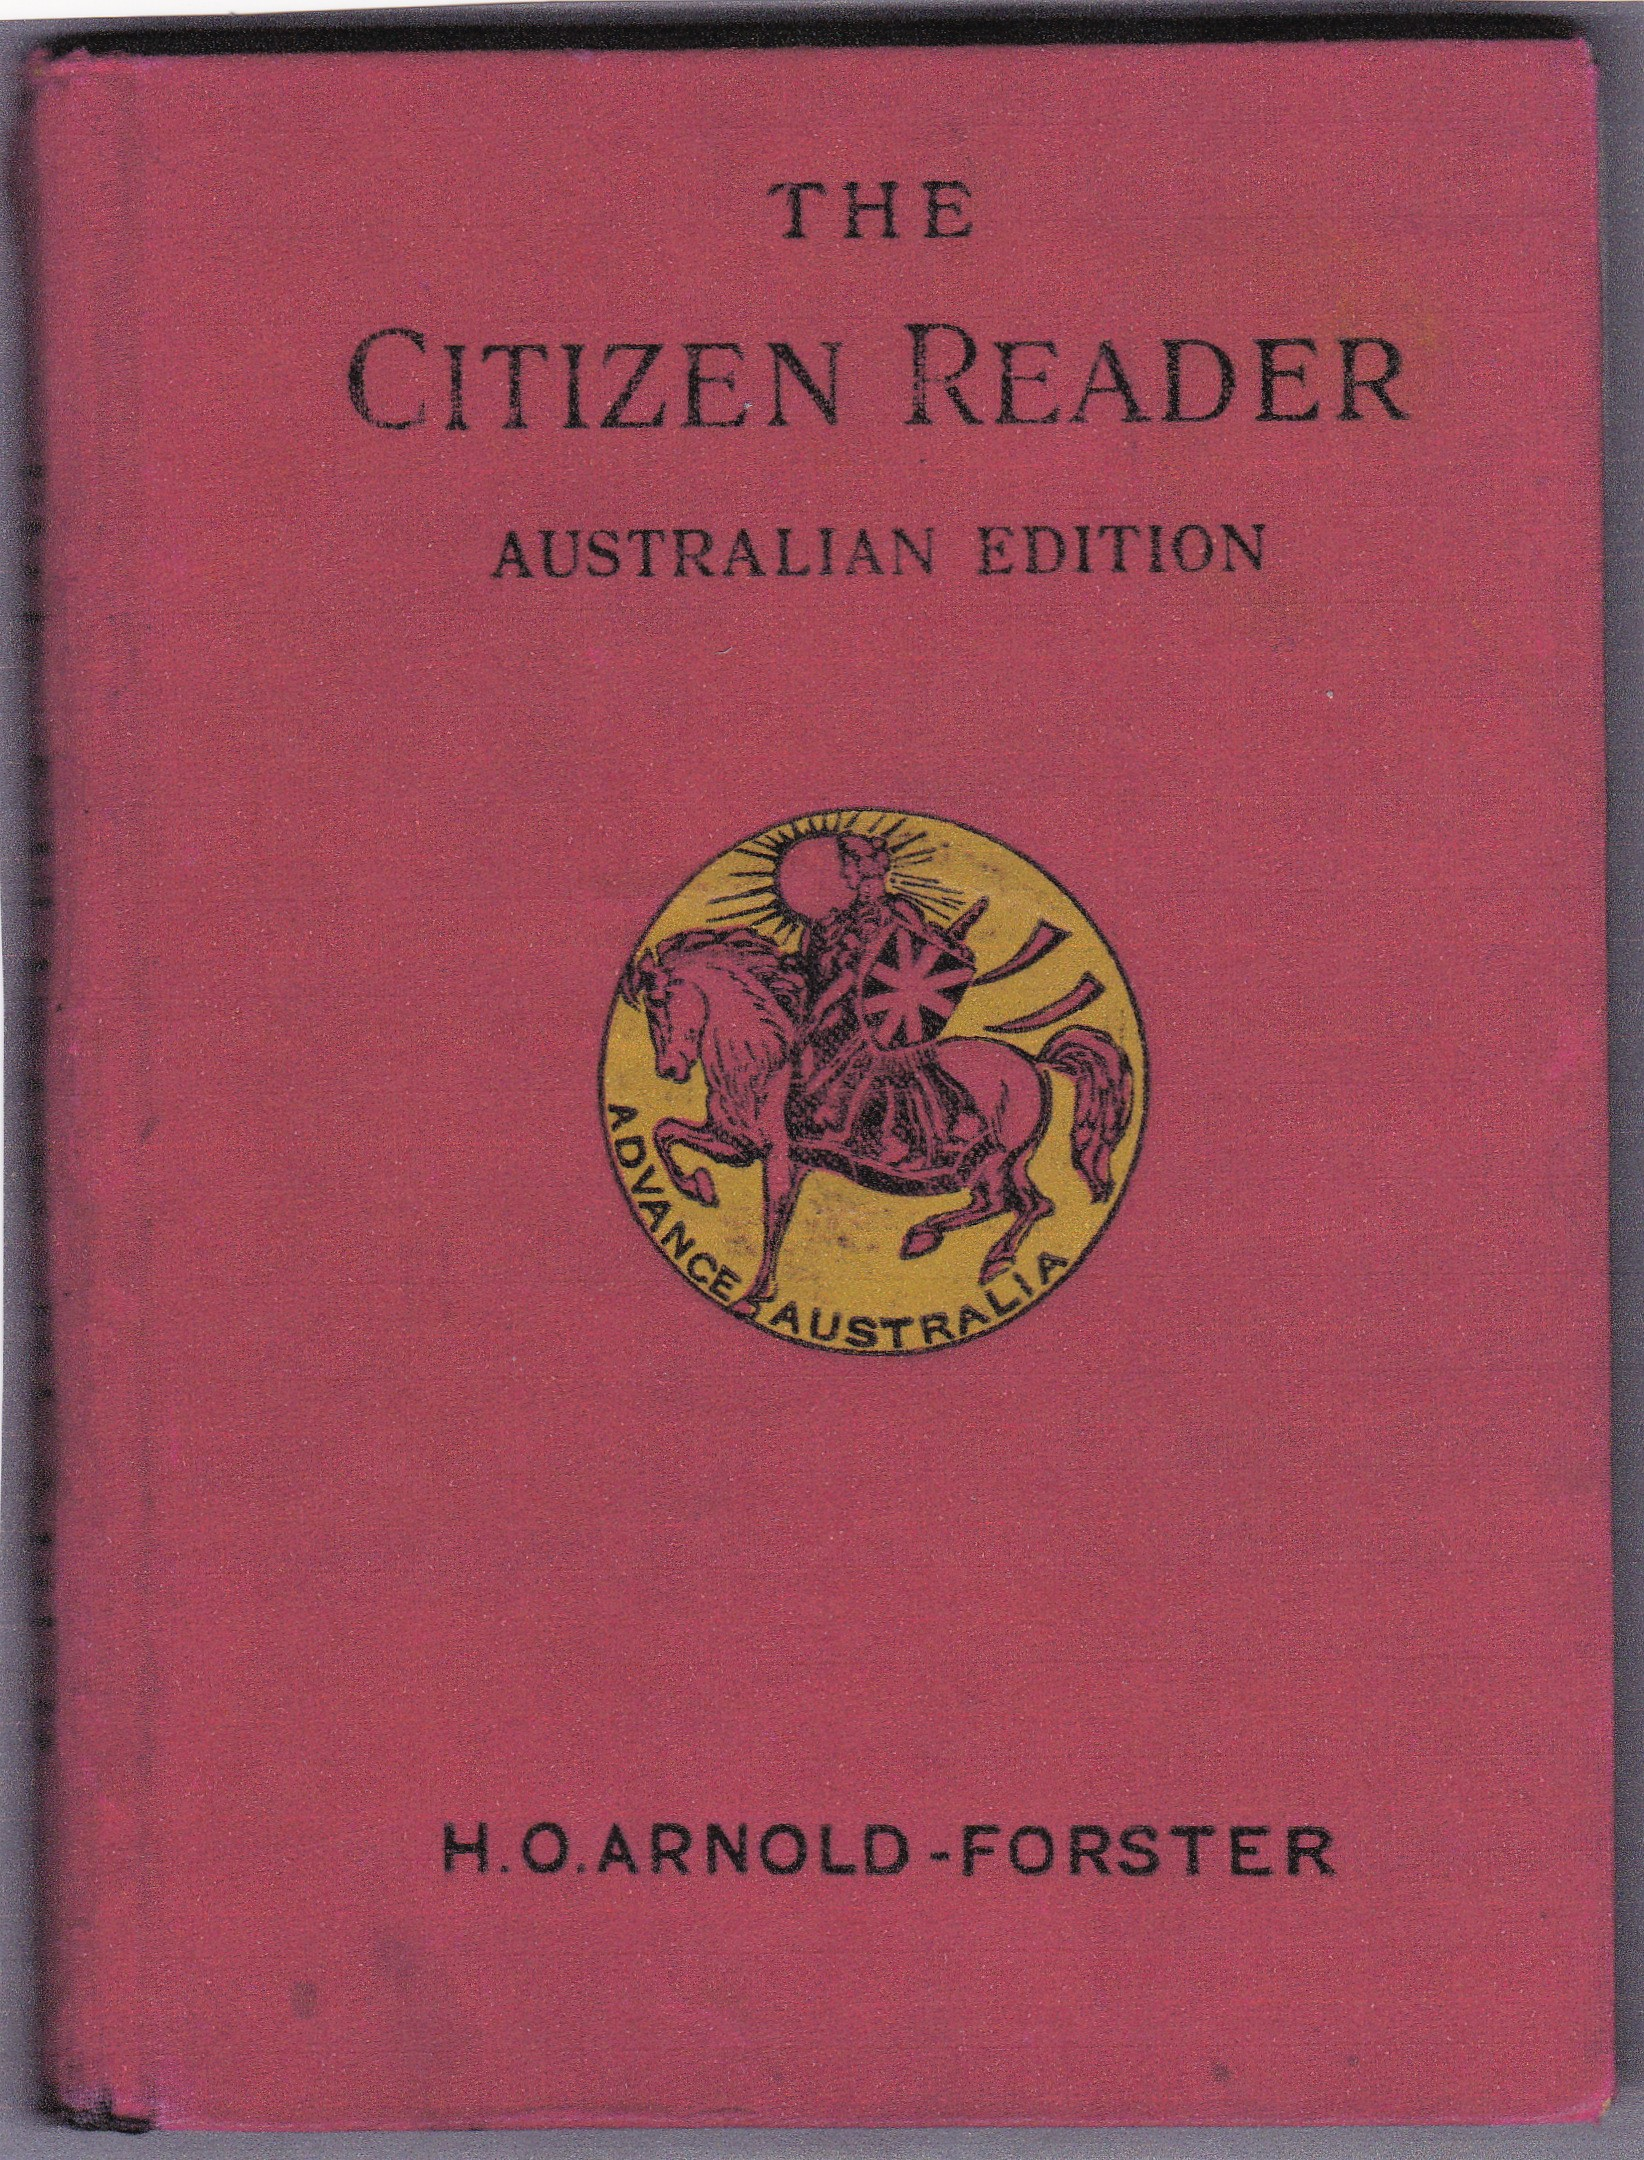 The Citizen Reader